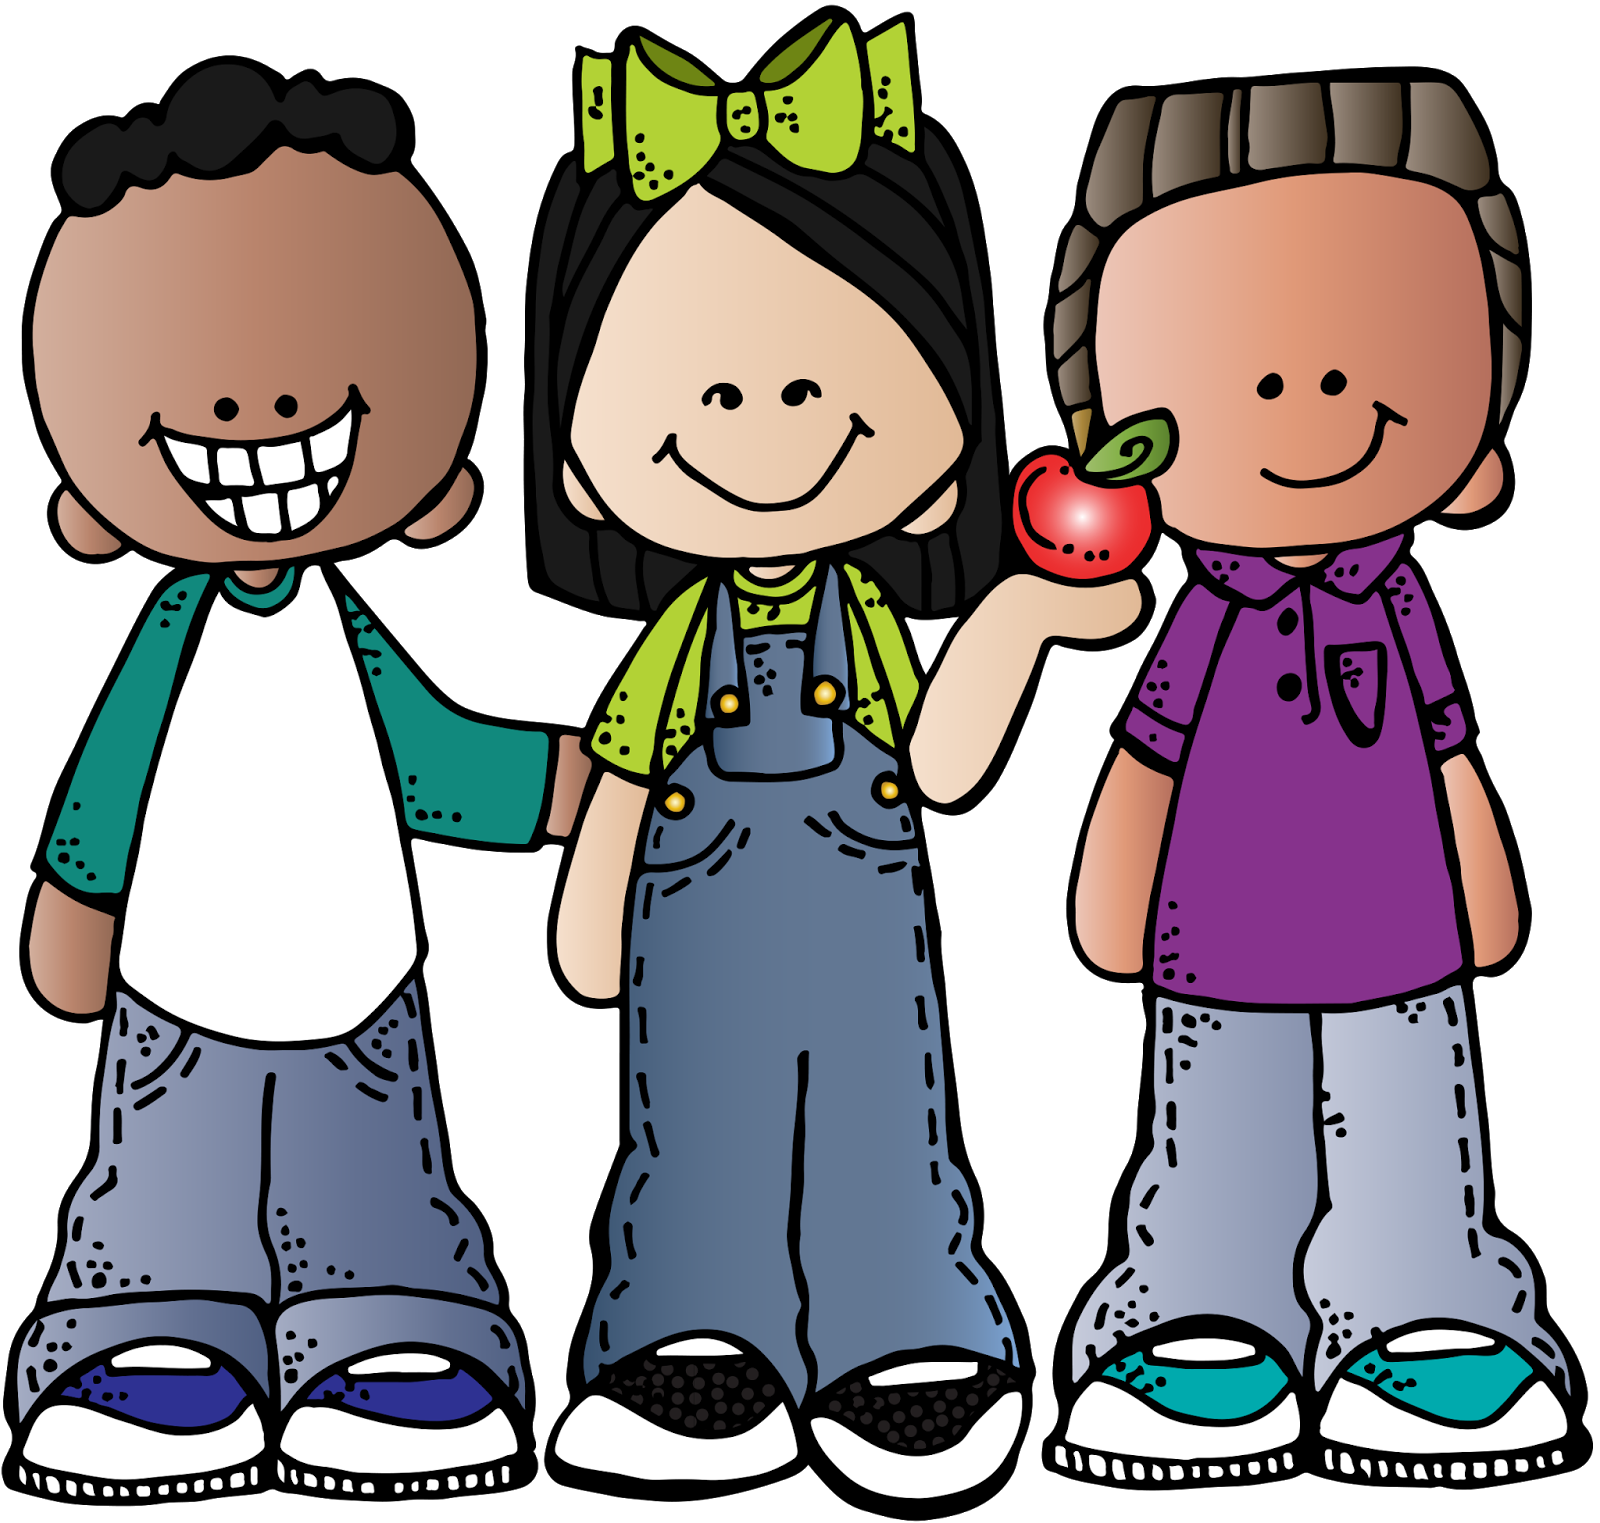 Tripping someone on the soccer field clipart clipart free Field Trip Clipart | Free download best Field Trip Clipart ... clipart free